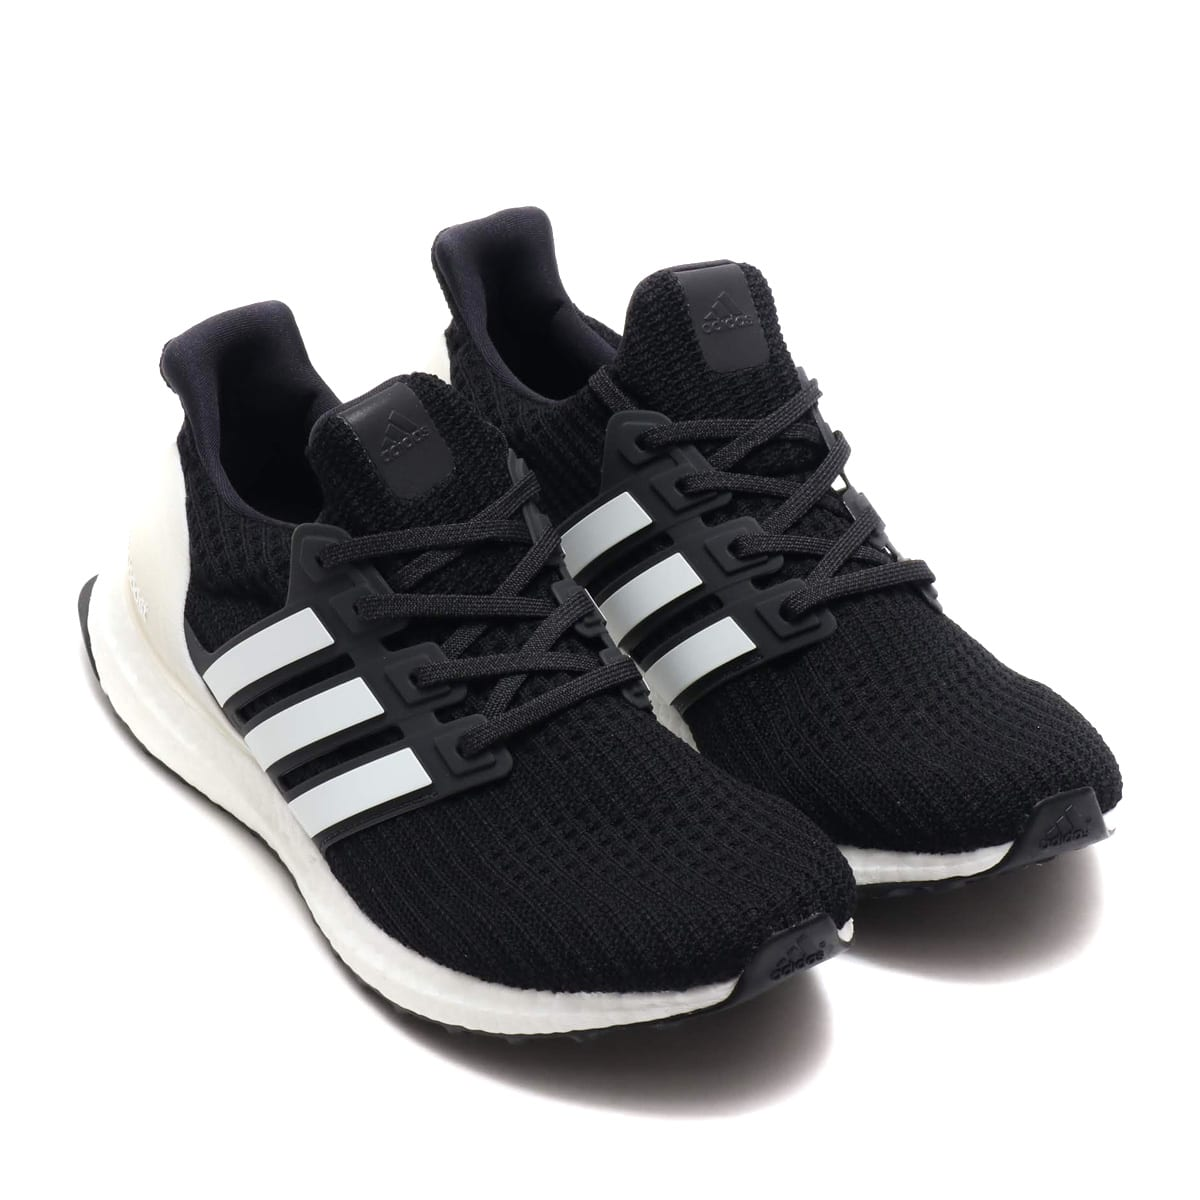 adidas UltraBOOST CORE BLACK/CLOUD WHITE/CARBON 18FW-I_photo_large